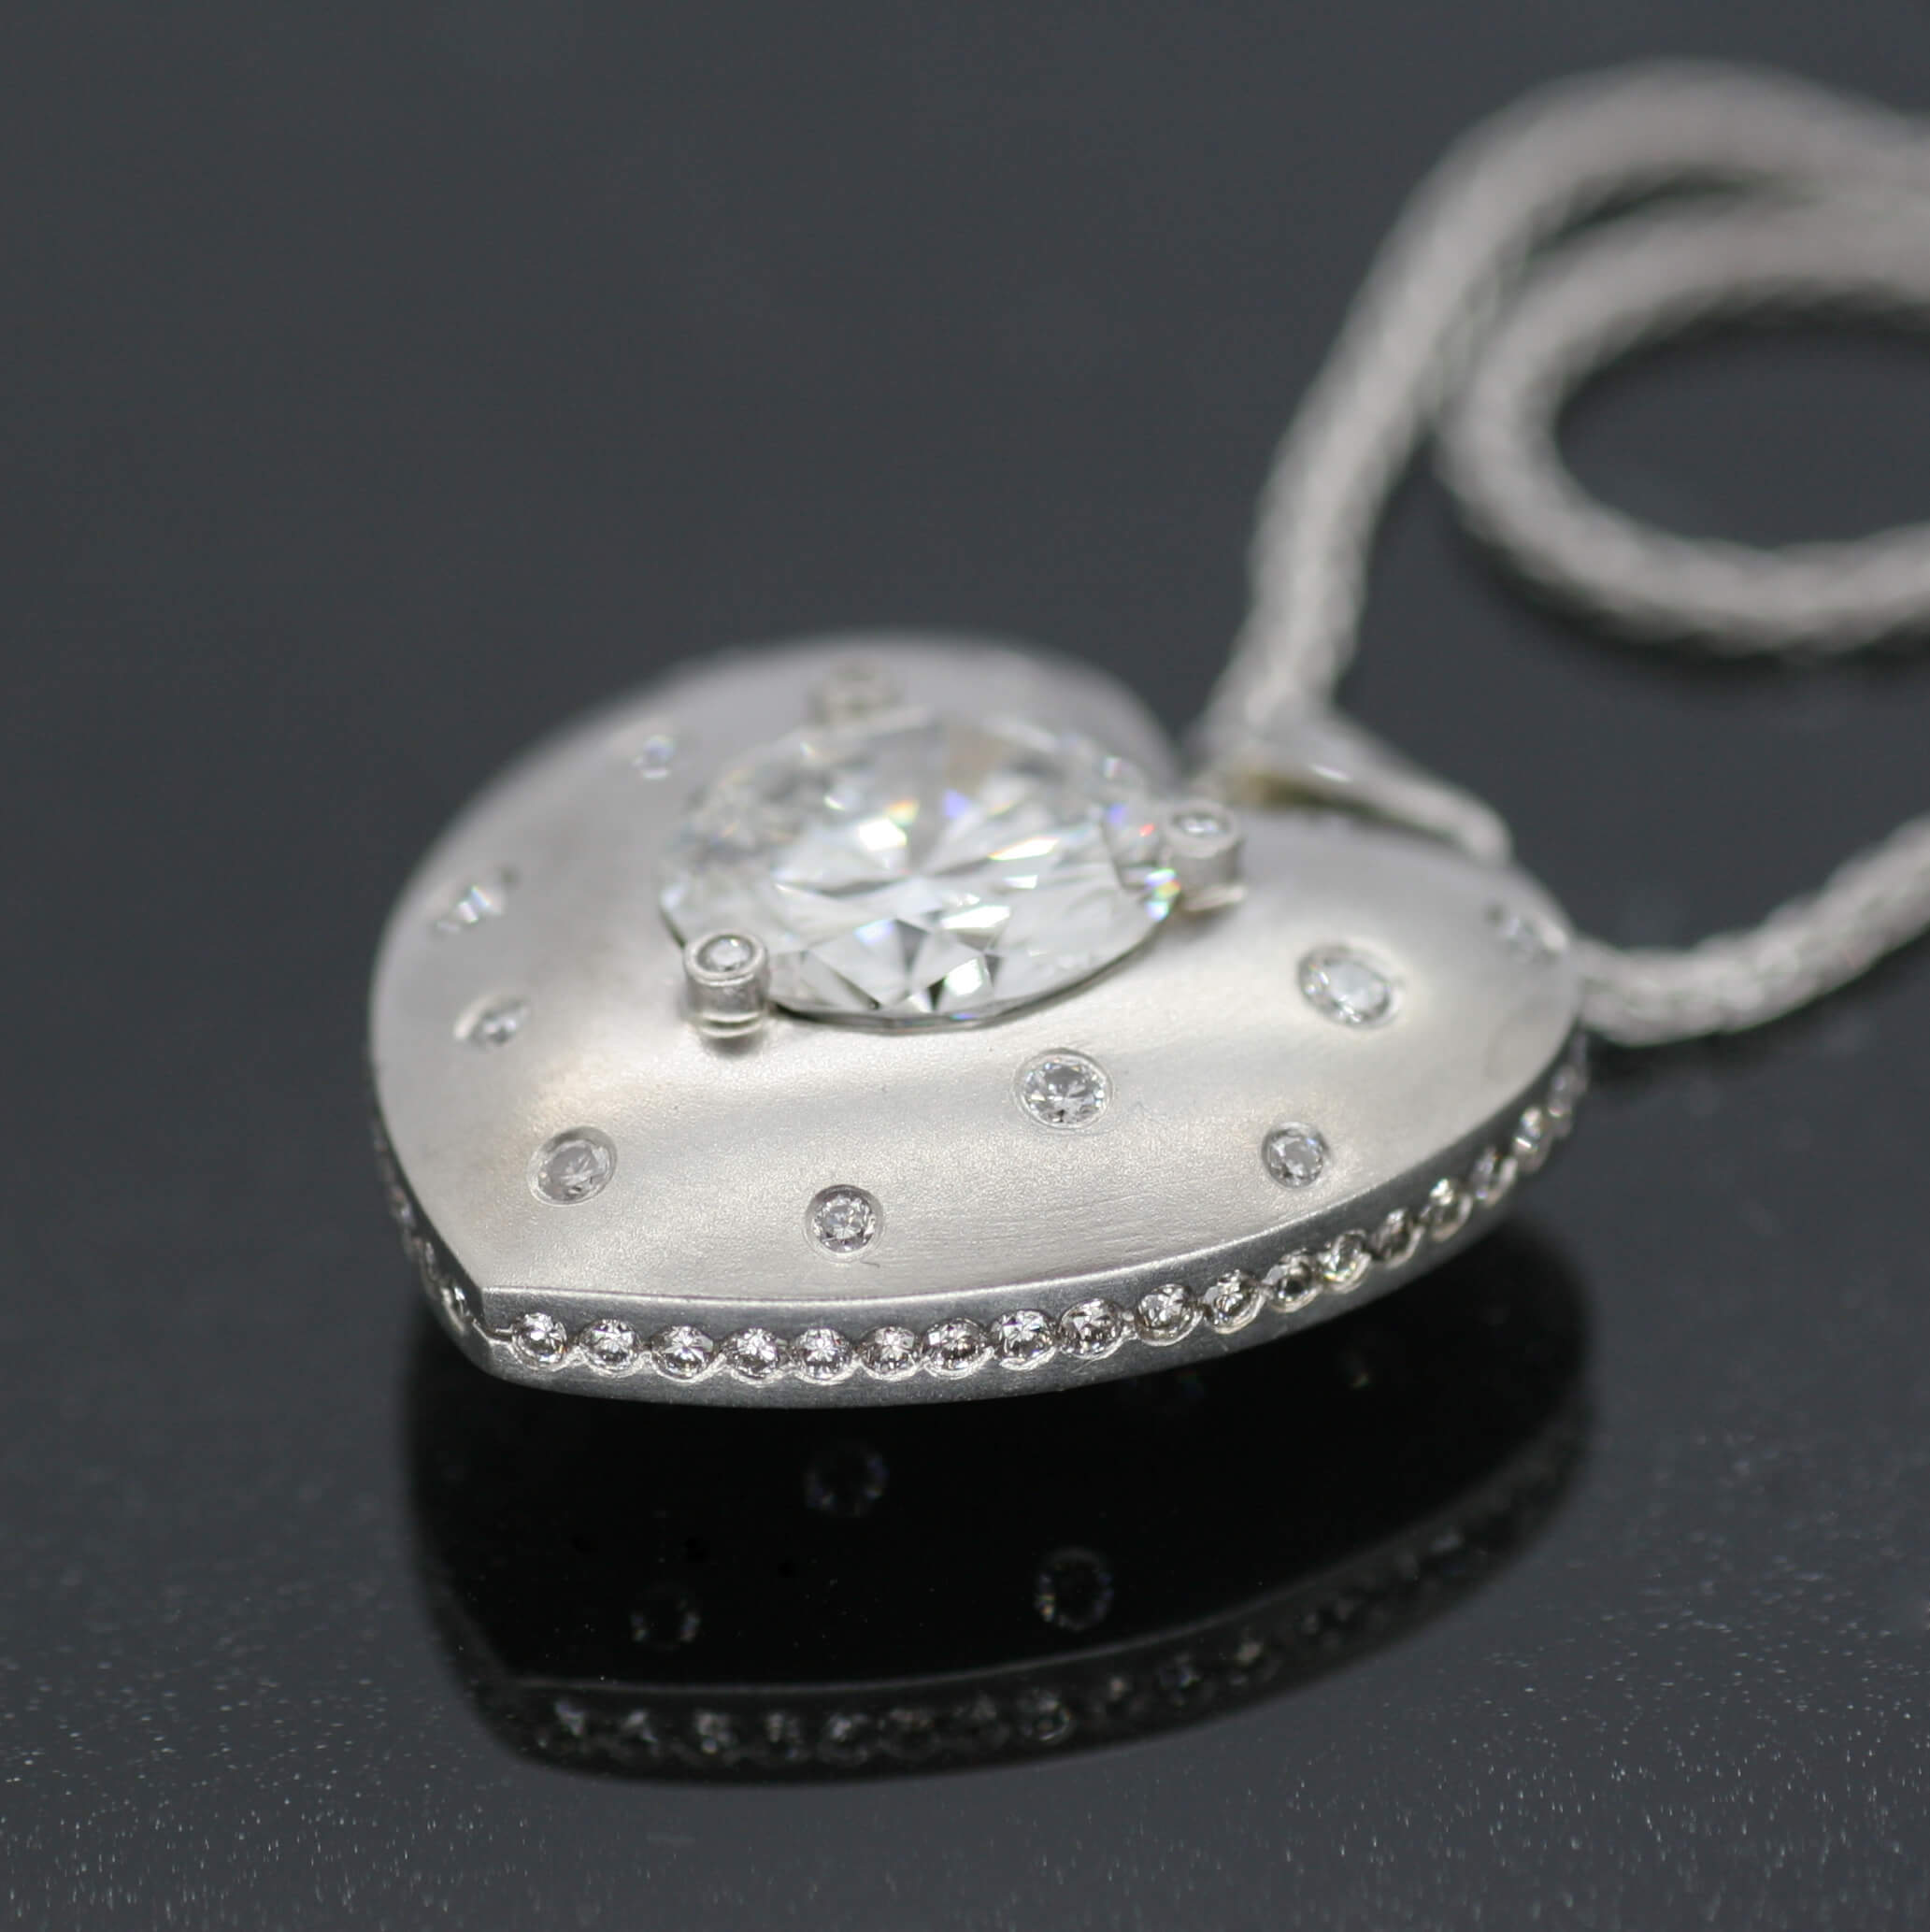 Bespoke Platinum and Diamond heart necklace on Platinum chain